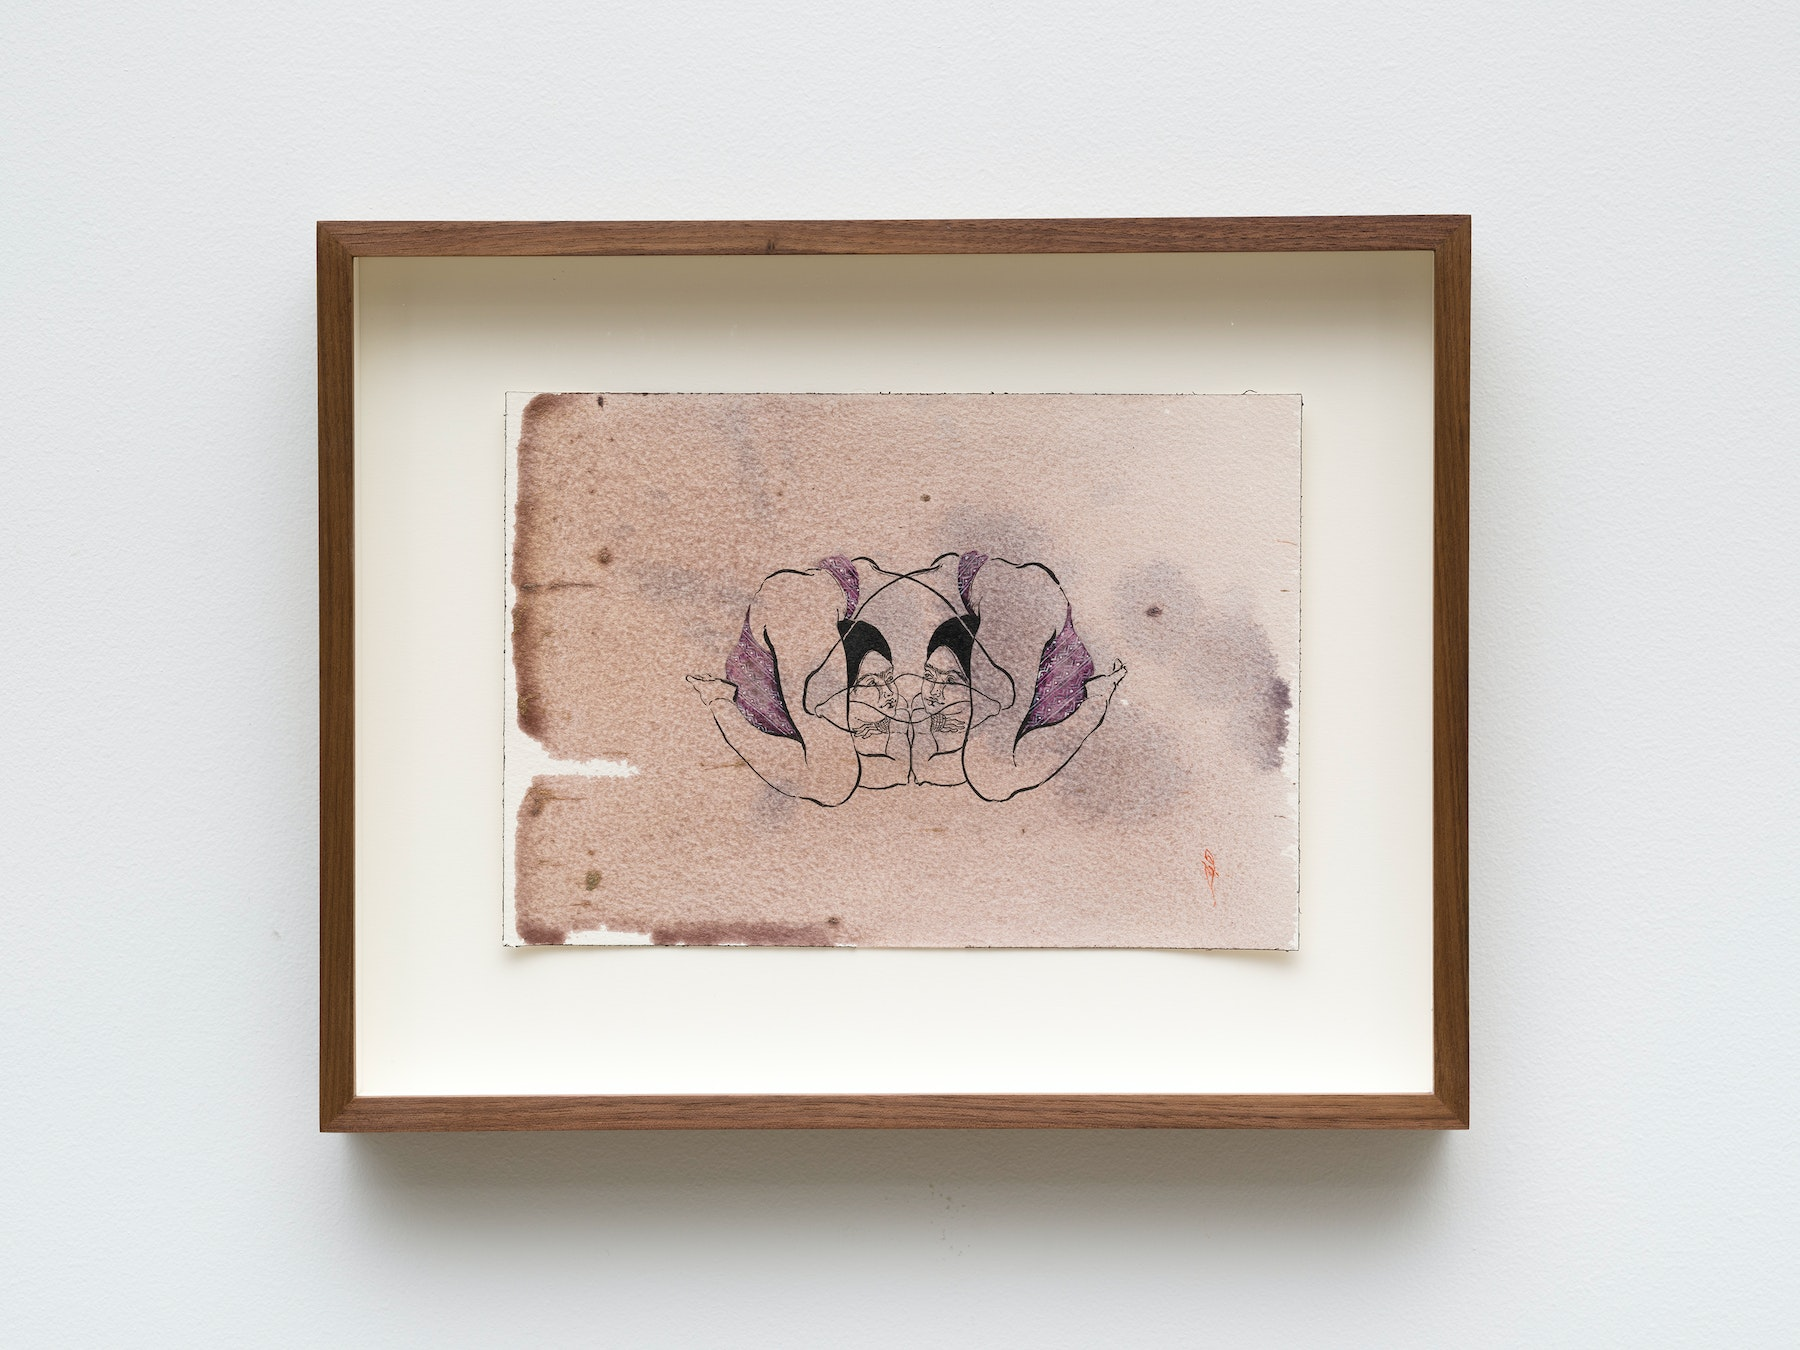 """Hayv Kahraman """"untitled,"""" 2021 Watercolor, gouache and dried pigment on paper 7"""" x 10"""" [HxW] (17.78 x 25.4 cm) paper size, 11 ¹⁄₂"""" x 14 ¹⁄₂"""" x 2"""" [HxWxD] (29.21 x 36.83 x 5.08 cm) framed Inventory #KAR187 Courtesy of the artist and Vielmetter Los Angeles Photo credit: Jeff Mclane"""